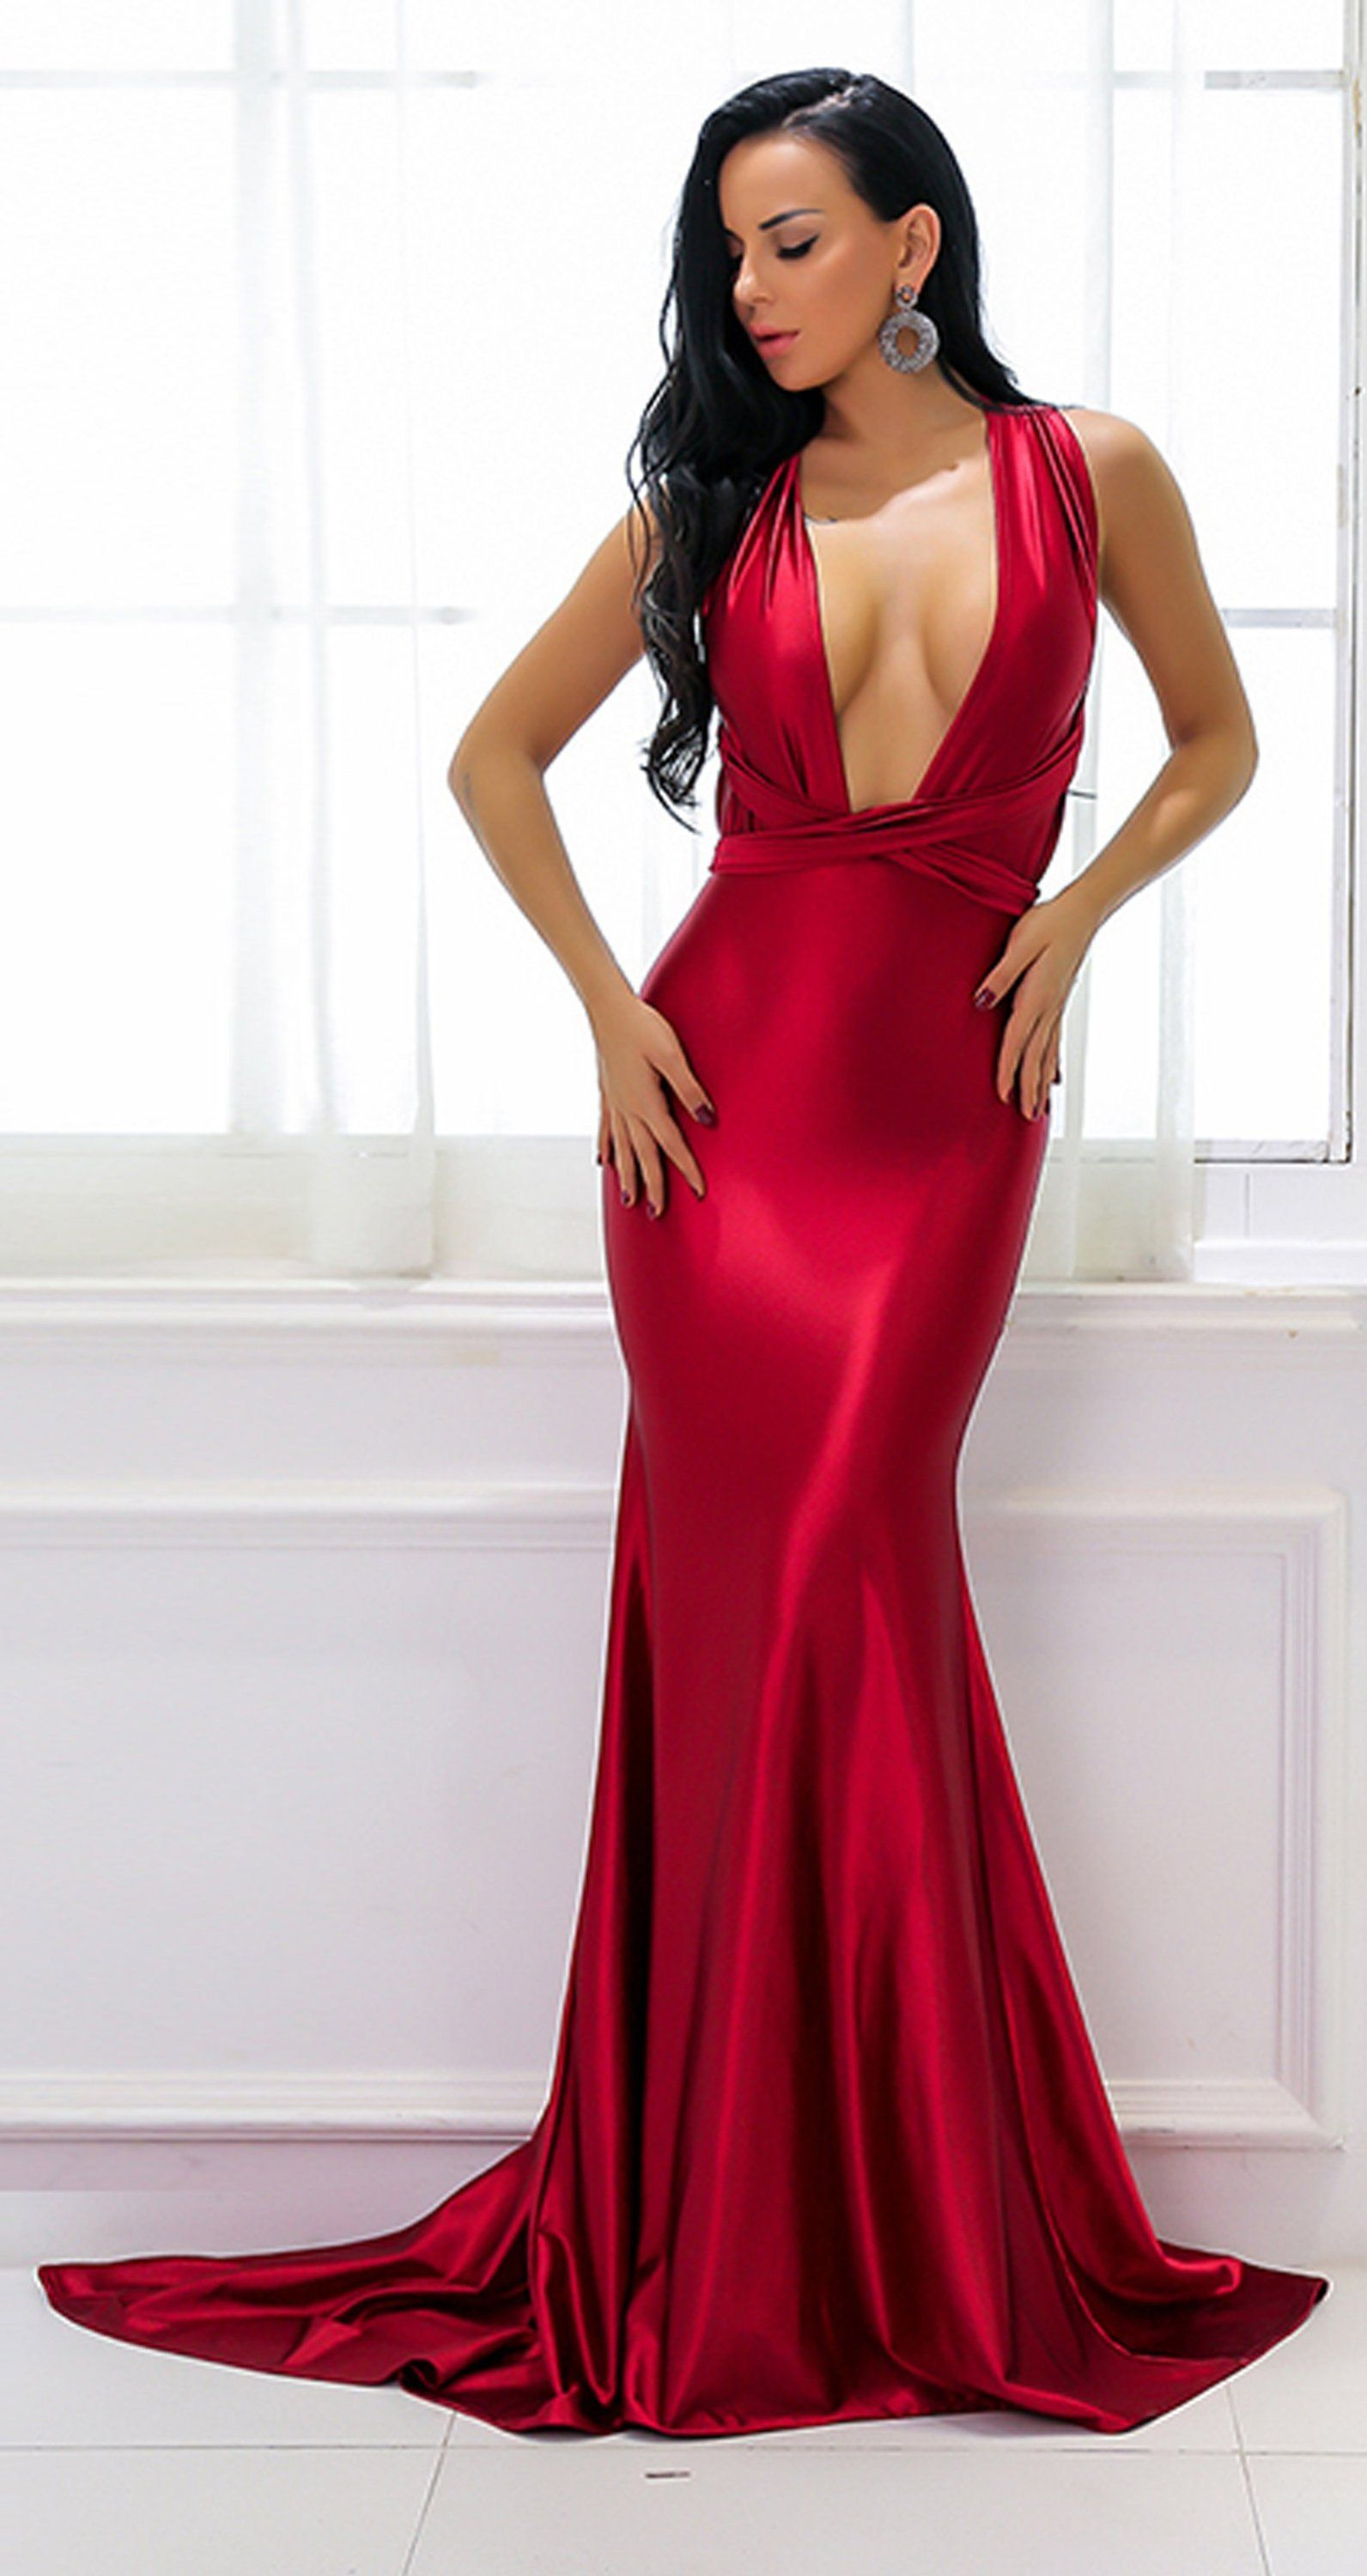 ad883f88b3 Beautiful Red Silk Prom Dresses - Gorgeous Sparkly Satin Graduation  Homecoming Deep V Neck Plunge Backless Mermaid Gown Floor Length Dress -  Hermosos ...